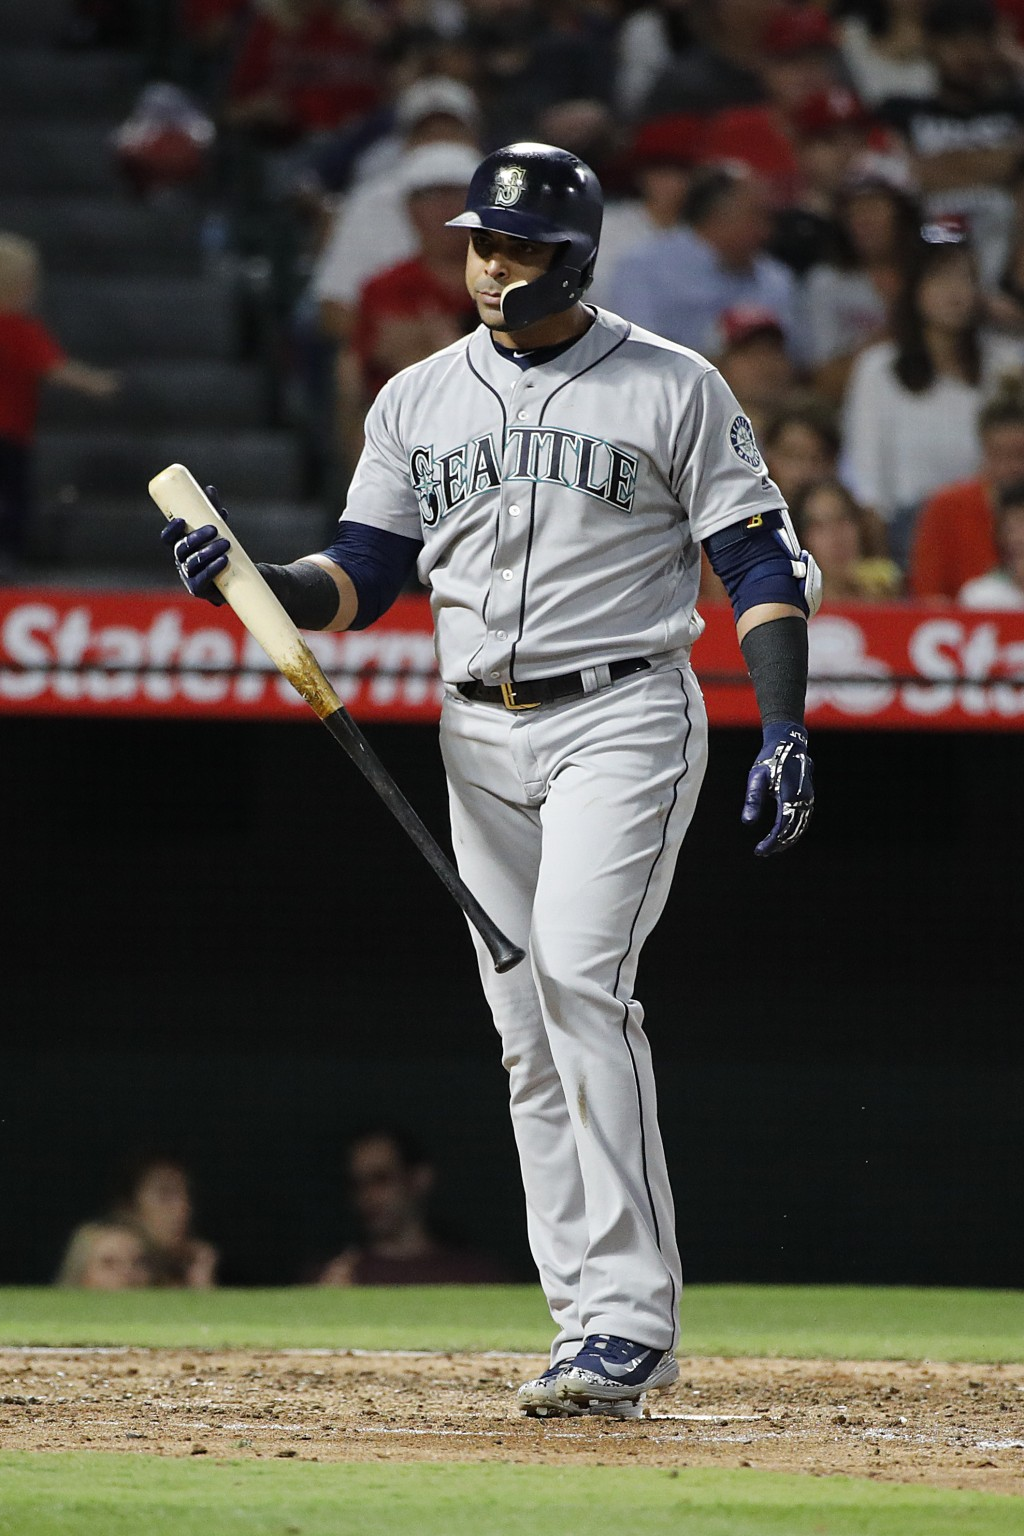 Seattle Mariners' Nelson Cruz heads back to the dugout after striking out during the fourth inning of the team's baseball game against the Los Angeles